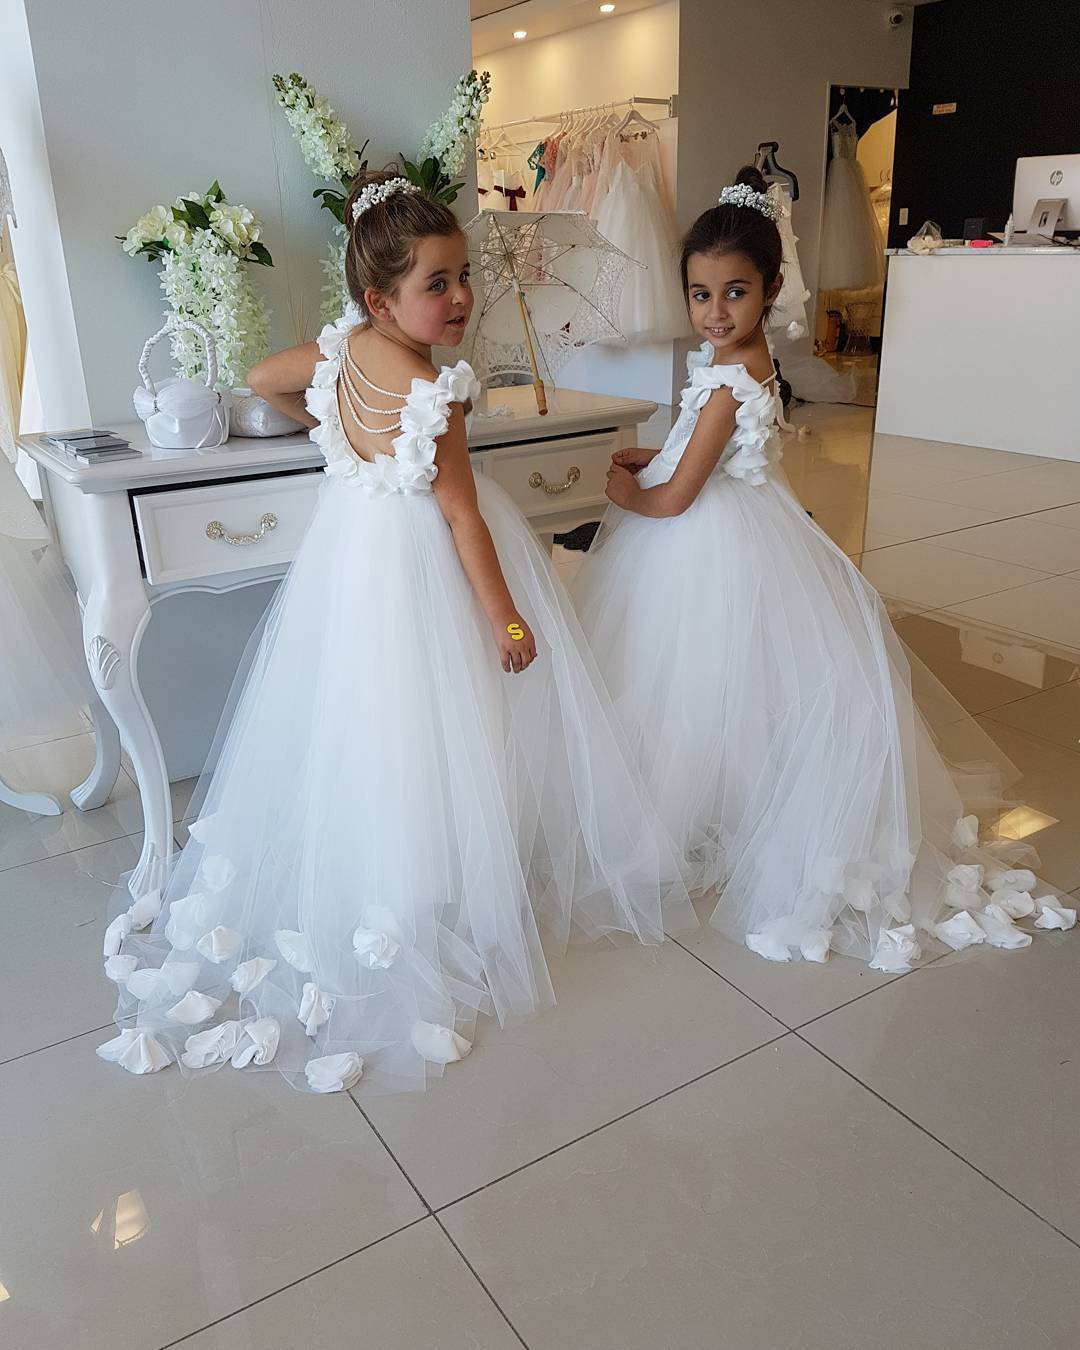 White Wedding Flower Girls Dresses Cute Tull Kids Gowns 2018 Pearls Child Dress image 3